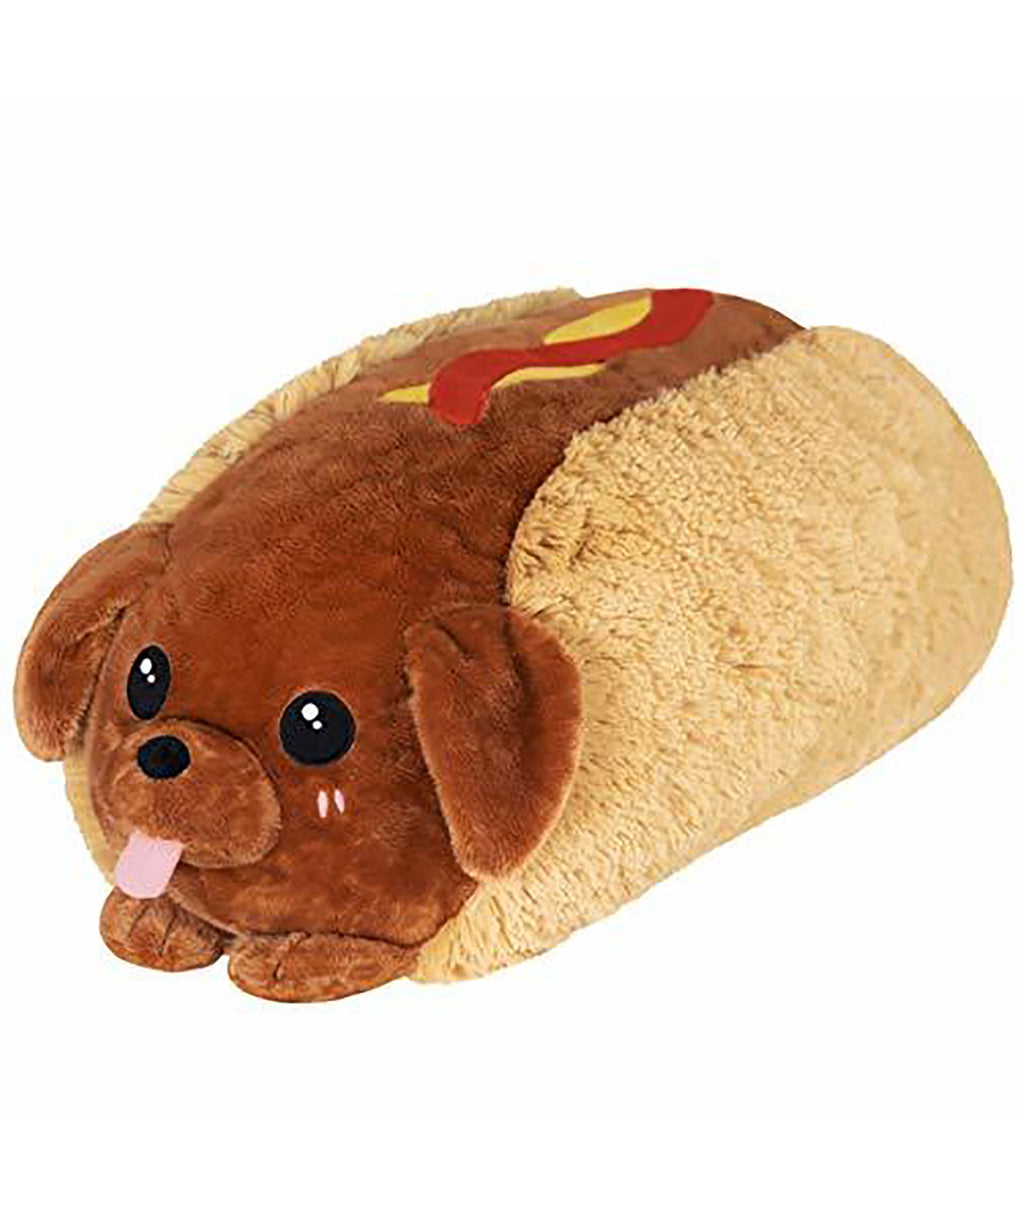 Squishable Regular Dachshund Hotdog